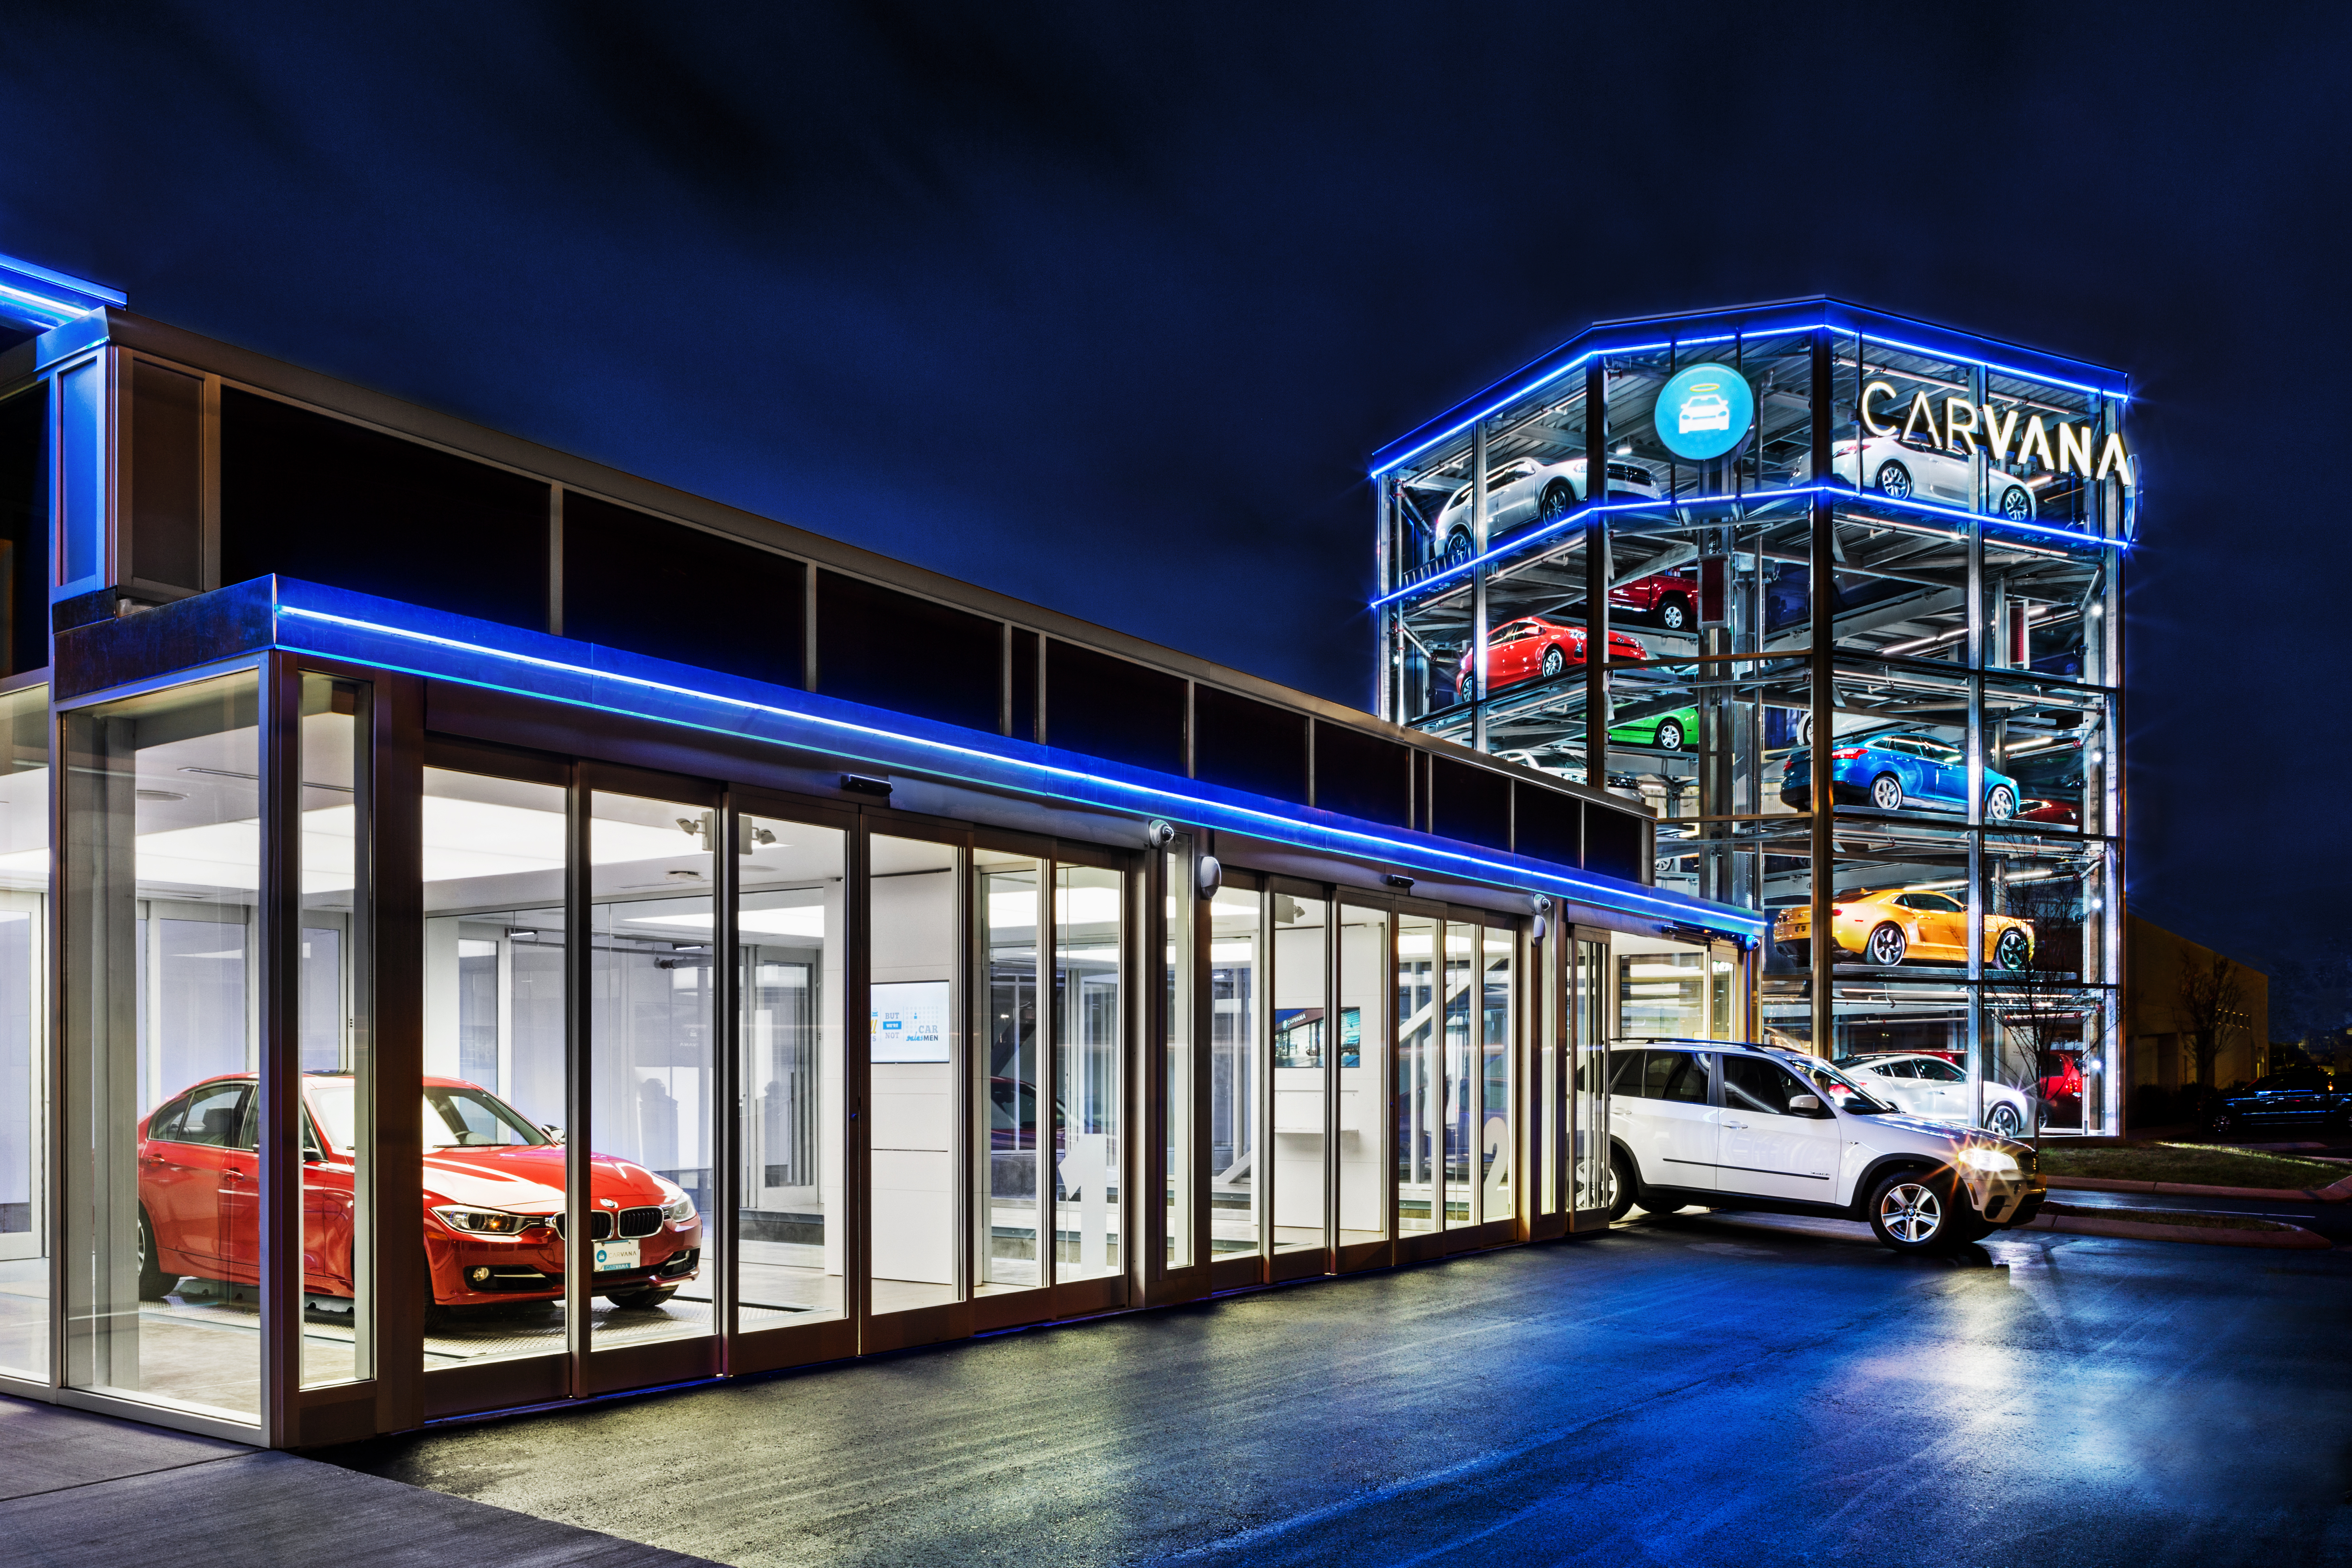 A five-story vending machine for cars just opened in